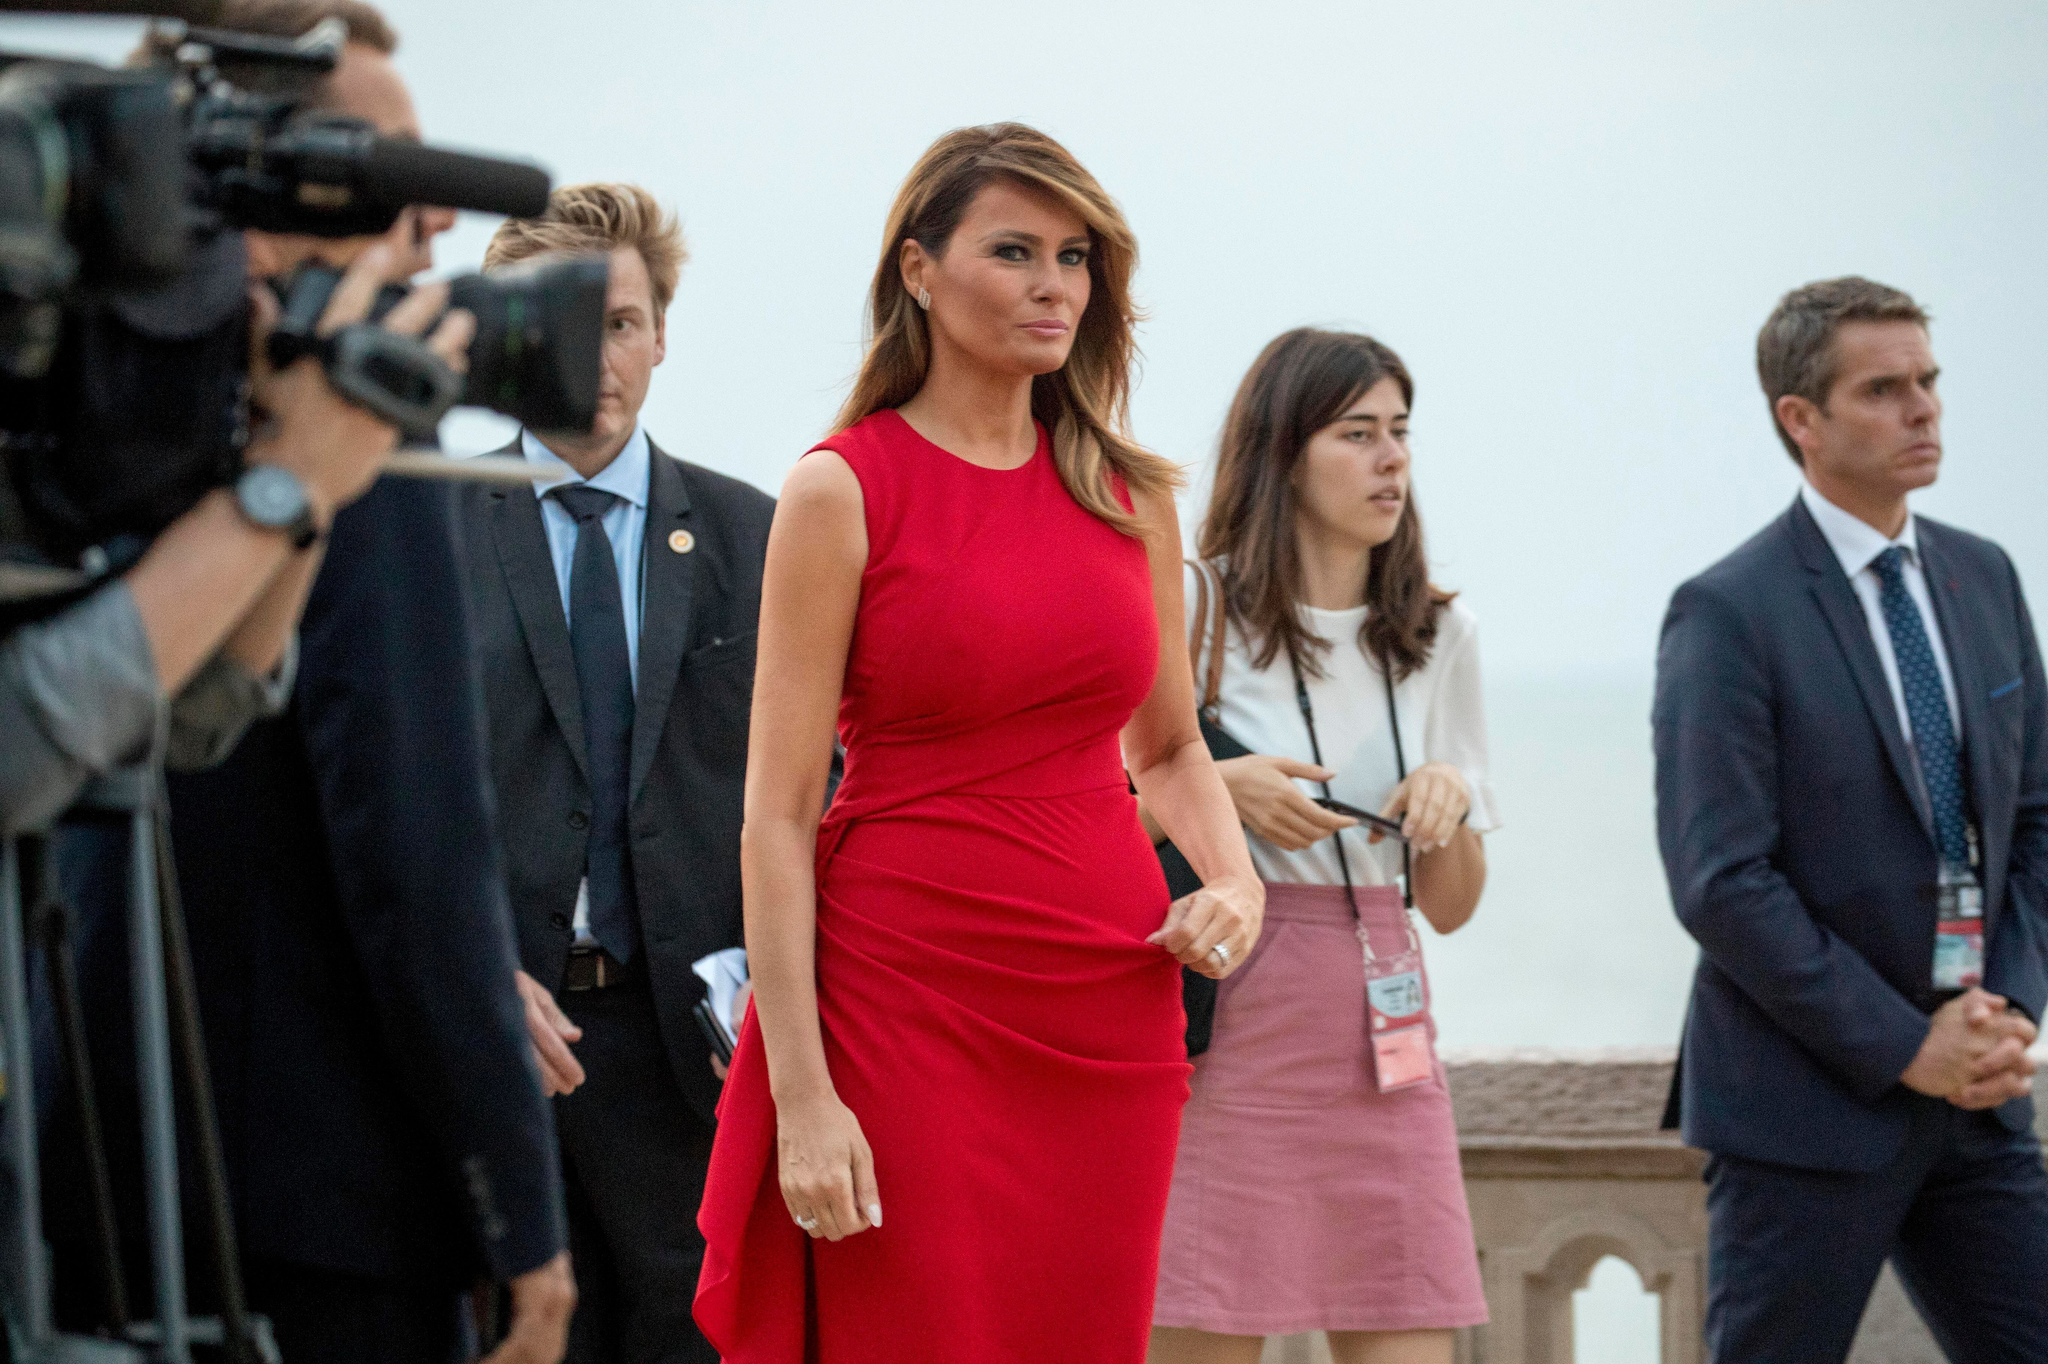 First lady Melania Trump arrives for the Group of Seven leaders and guests G-7 family photo at the G-7 summit at the Hotel du Palais in Biarritz, FranceG7 Summit Trump, Biarritz, France - 25 Aug 2019